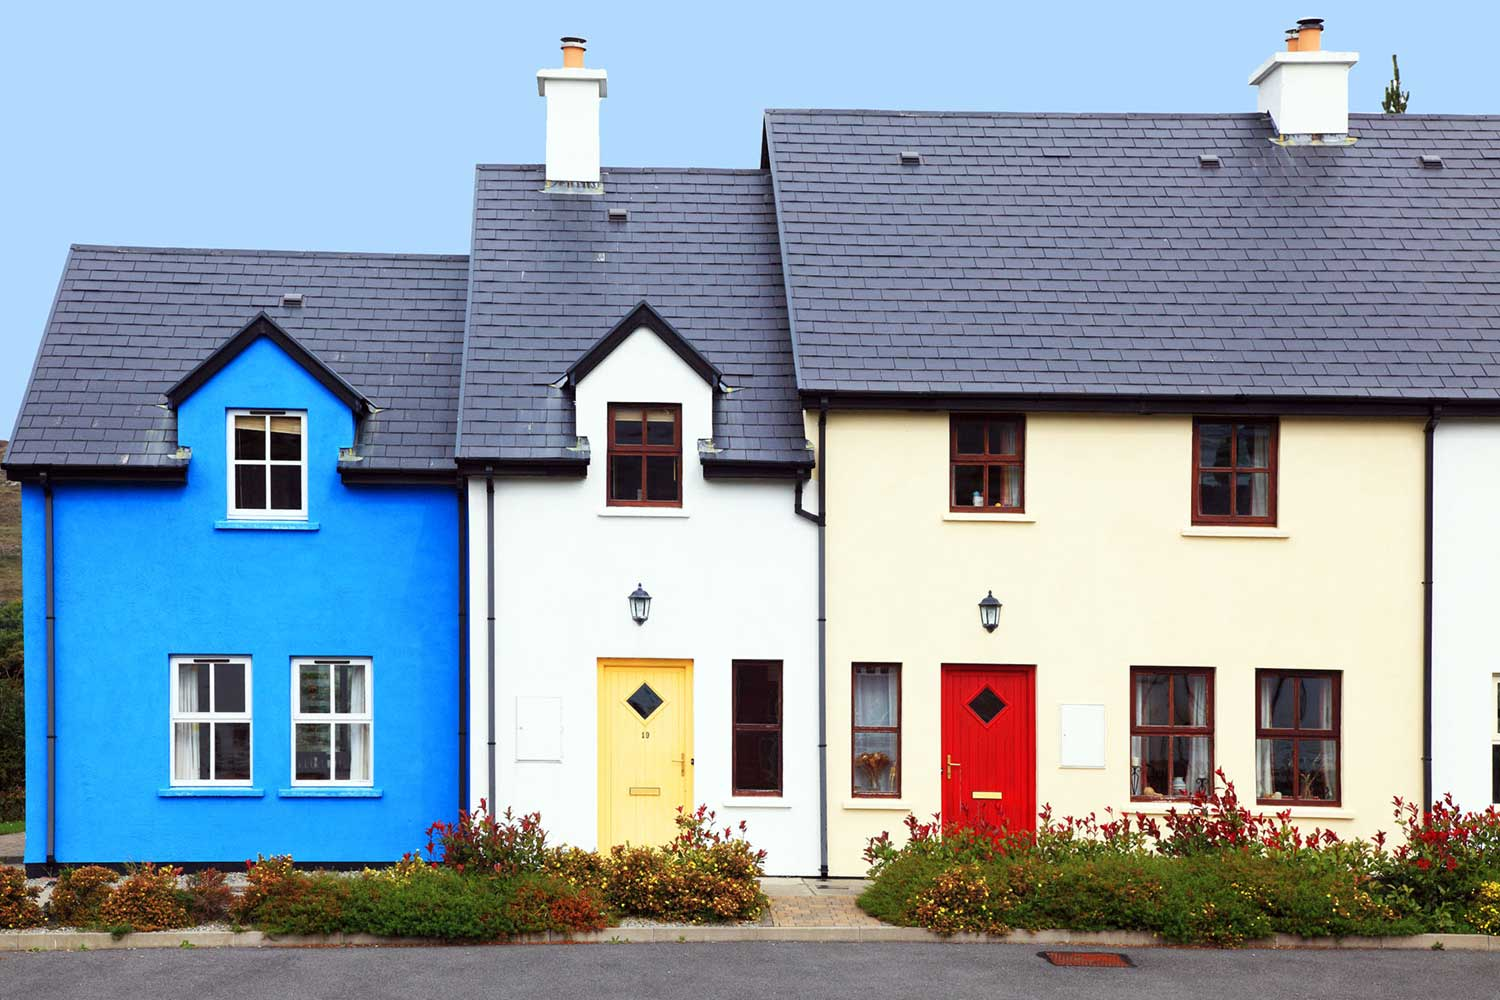 Ardgroom-Leisure-Village-self-catering-accommodation-west-cork-ireland-3-web.jpg